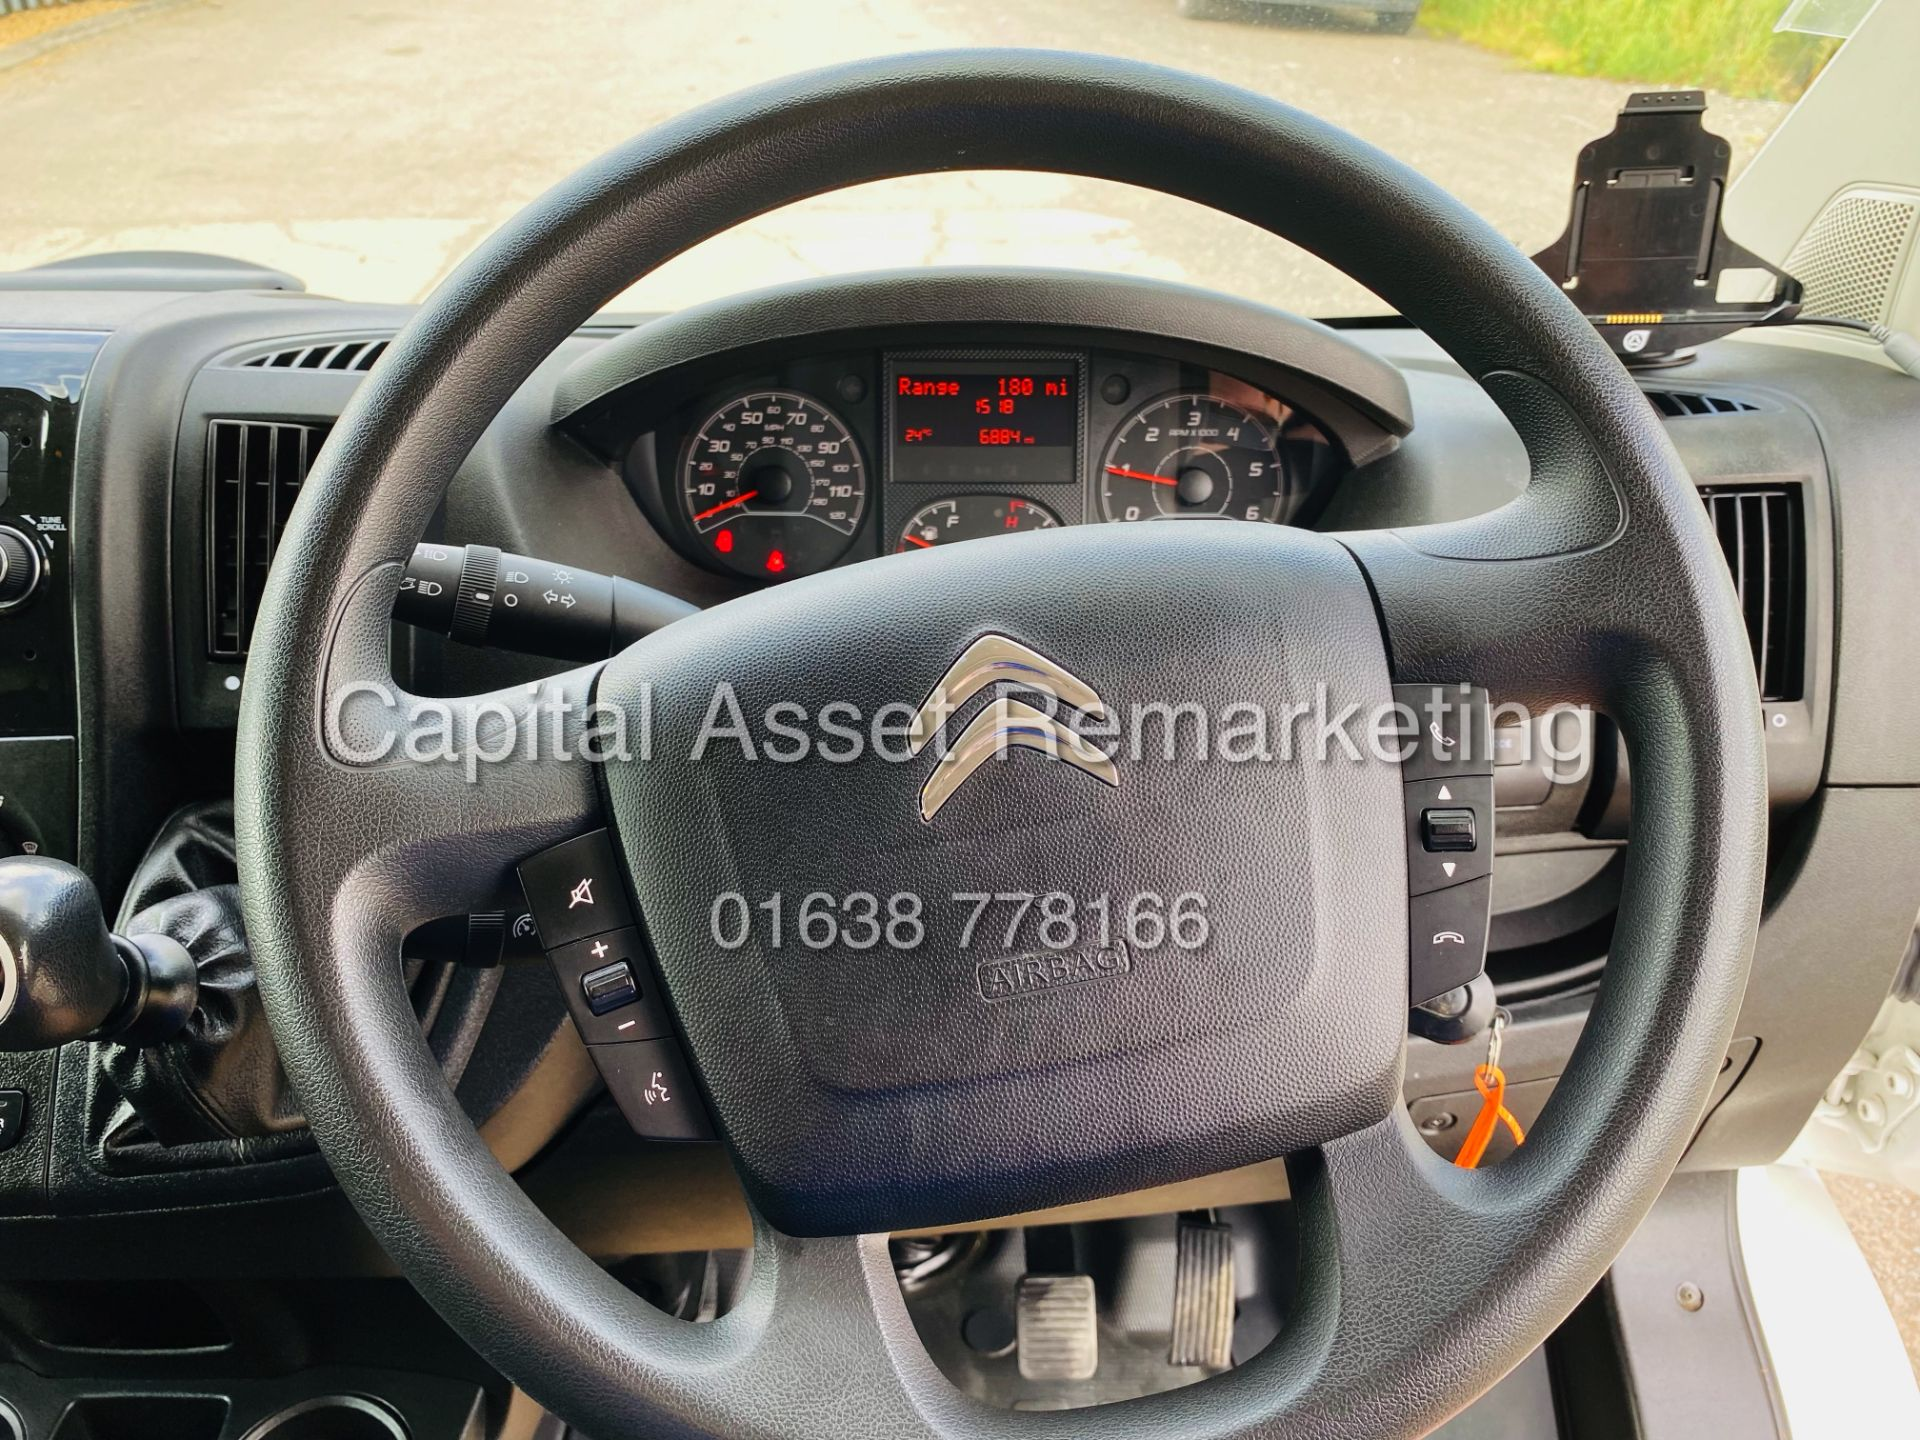 """ON SALE CITROEN RELAY 2.0 BLUE-HDI """"ENTERPRISE"""" L1H1 (2019 MODEL) AIR CON 6882 MILES ON THE CLOCK - Image 15 of 28"""